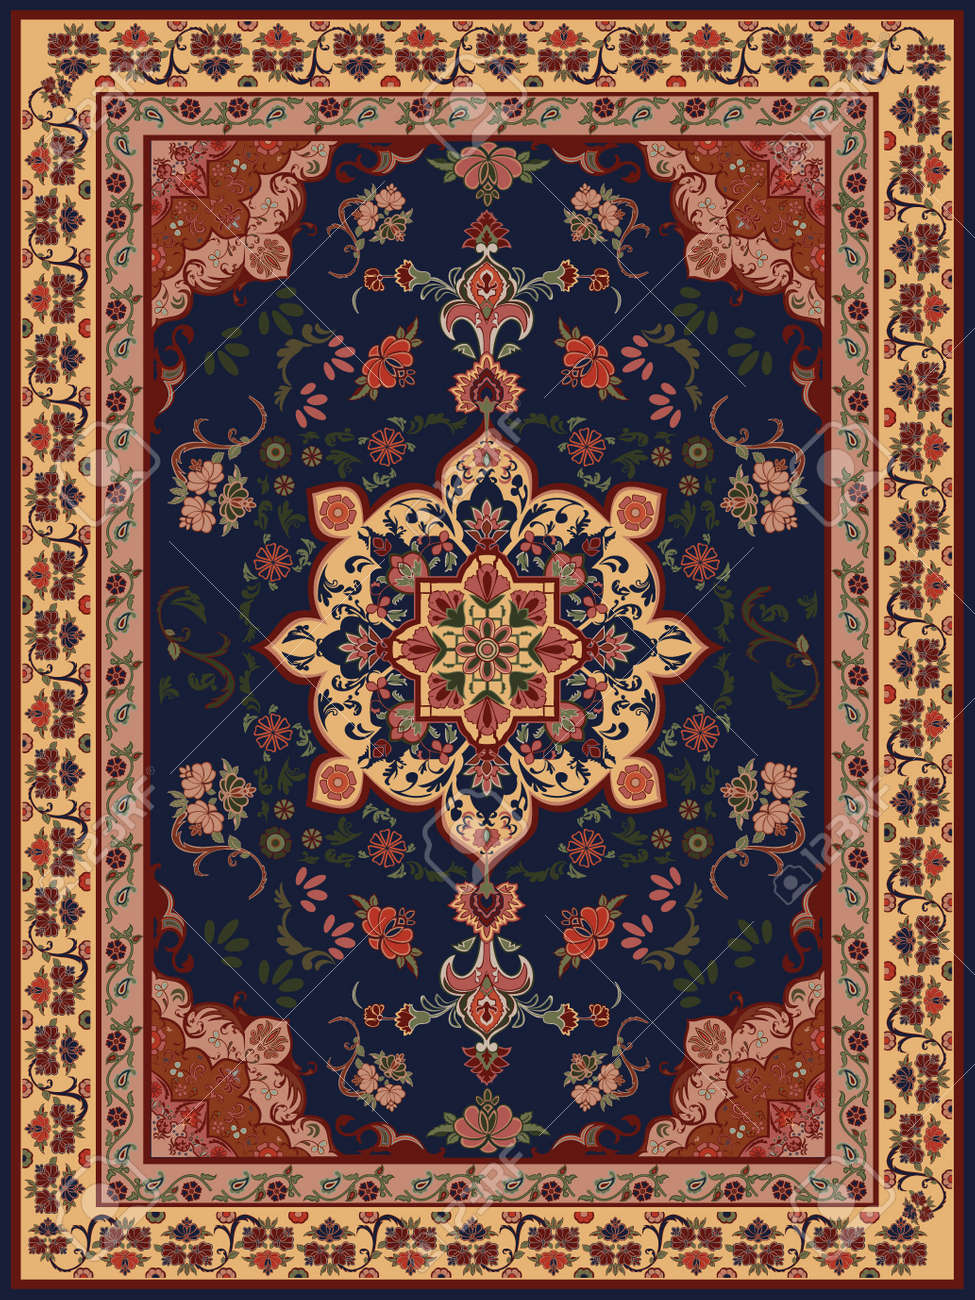 Carpet Design Captivating Oriental Floral Carpet Design Royalty Free Cliparts Vectors And . Design Inspiration